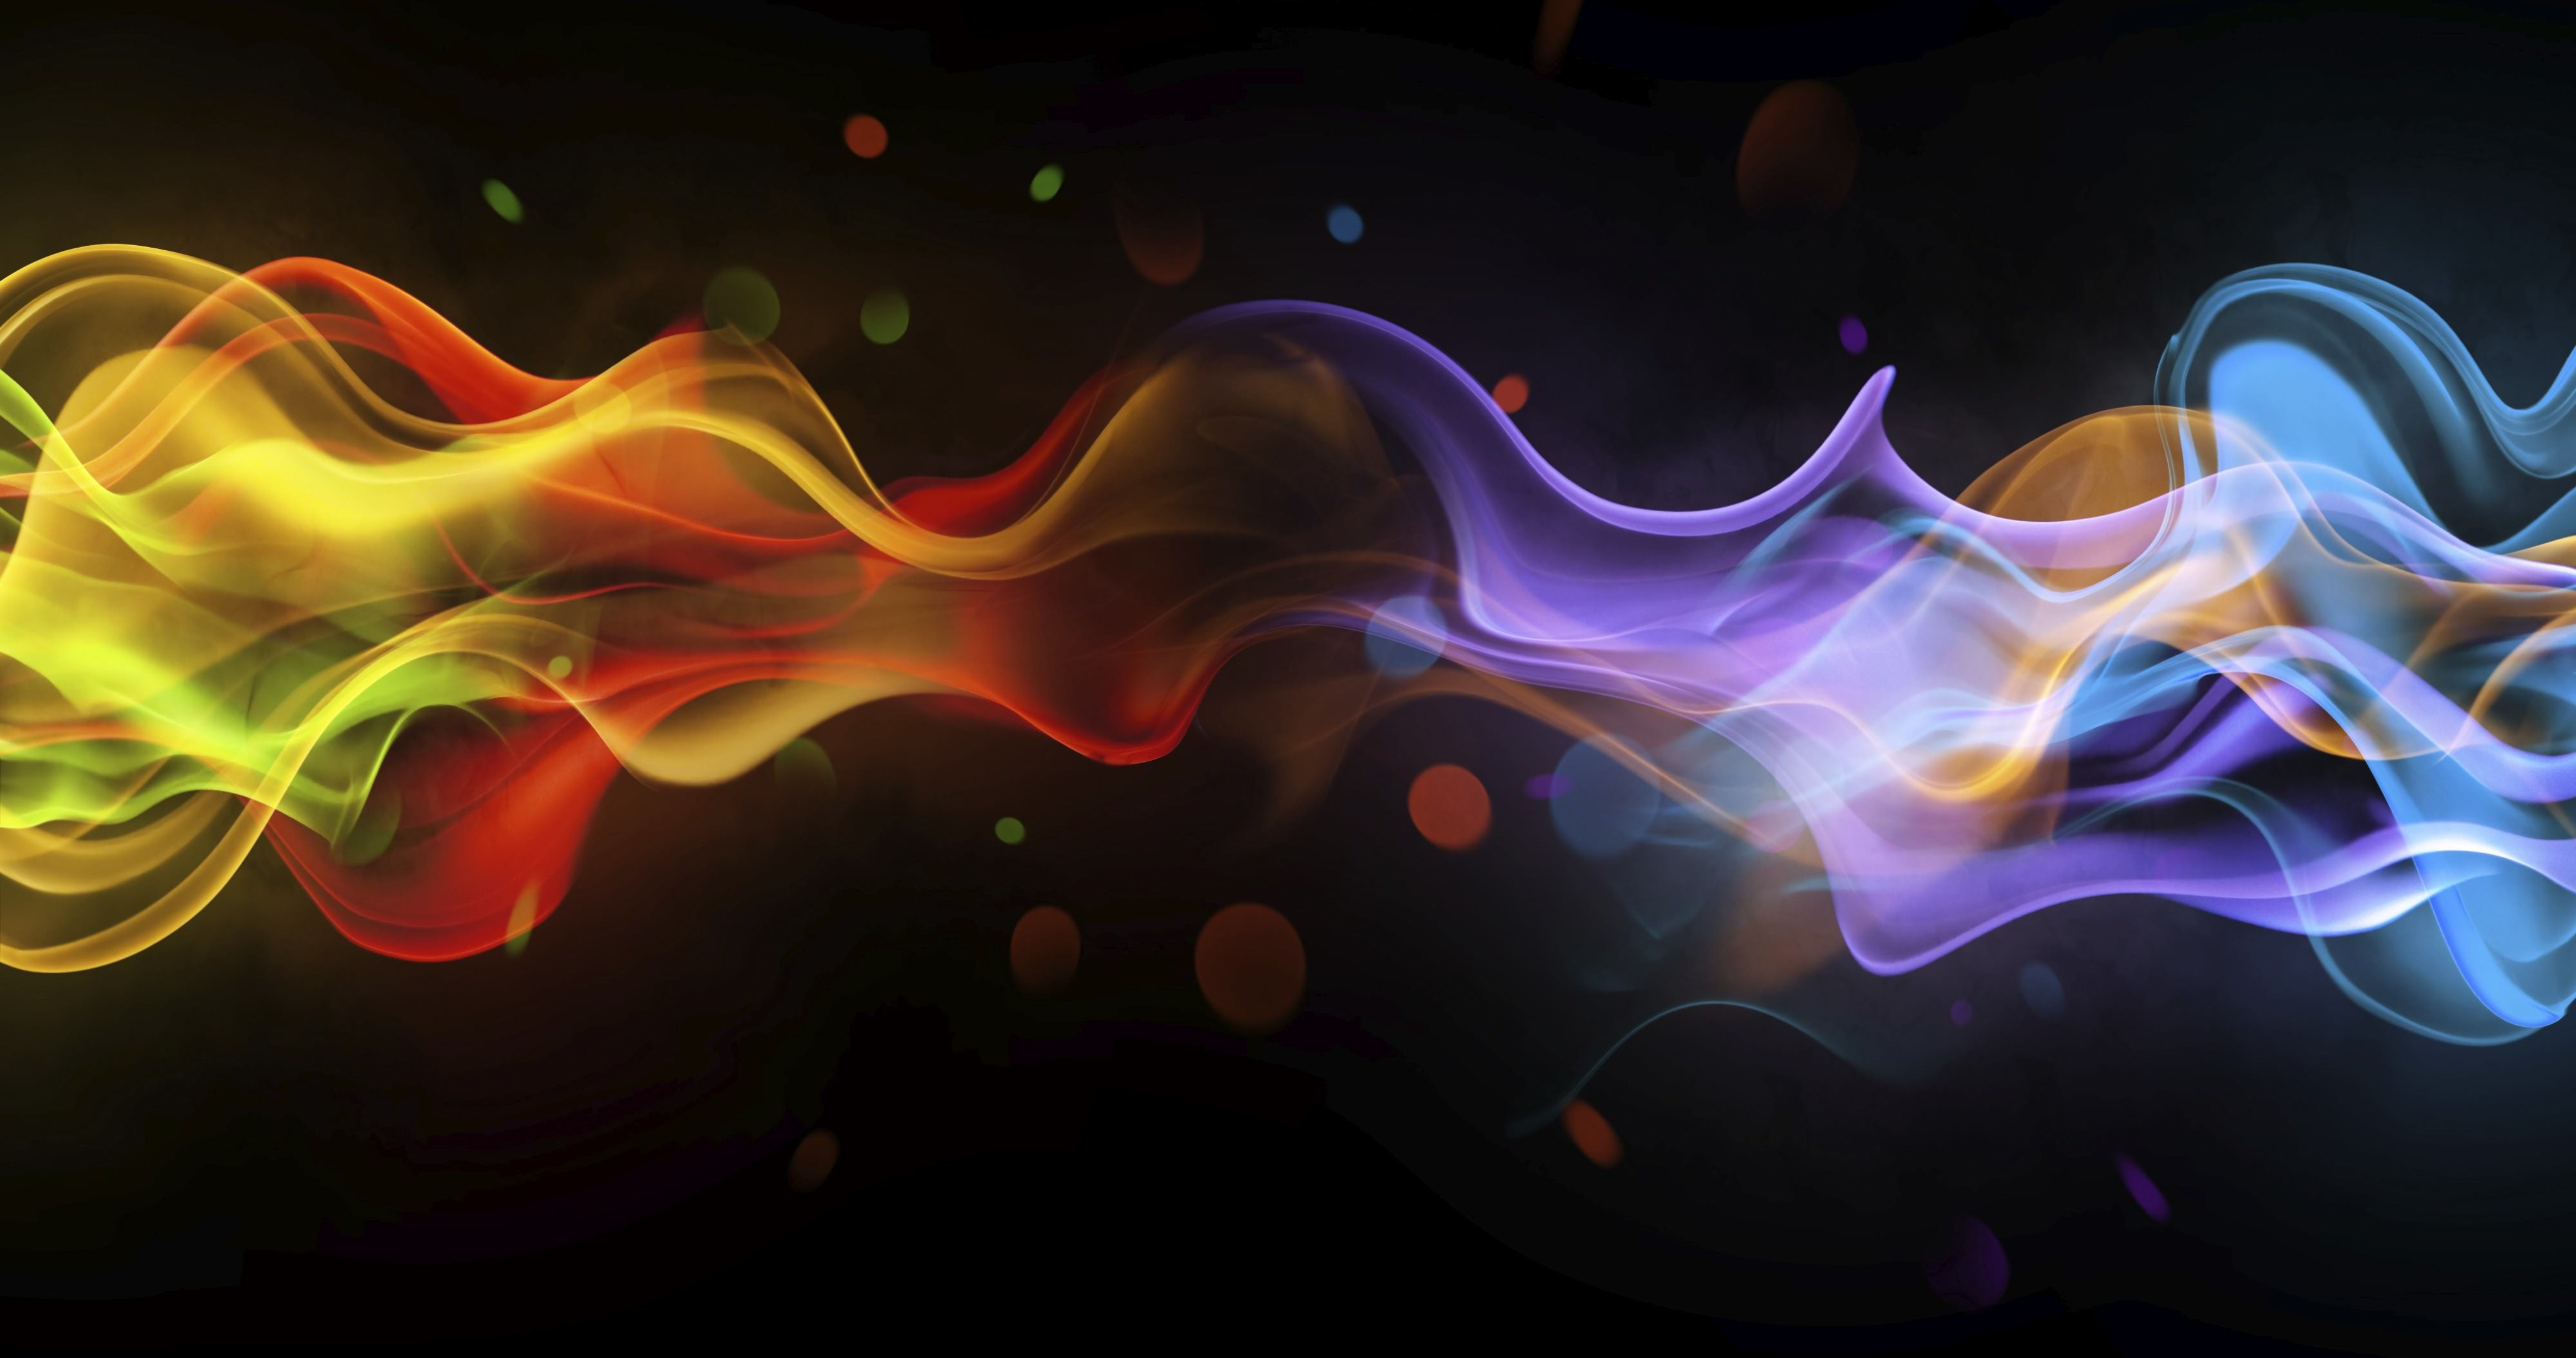 smoke multicolored wallpaper 4k ultra hd wallpaper » High quality walls